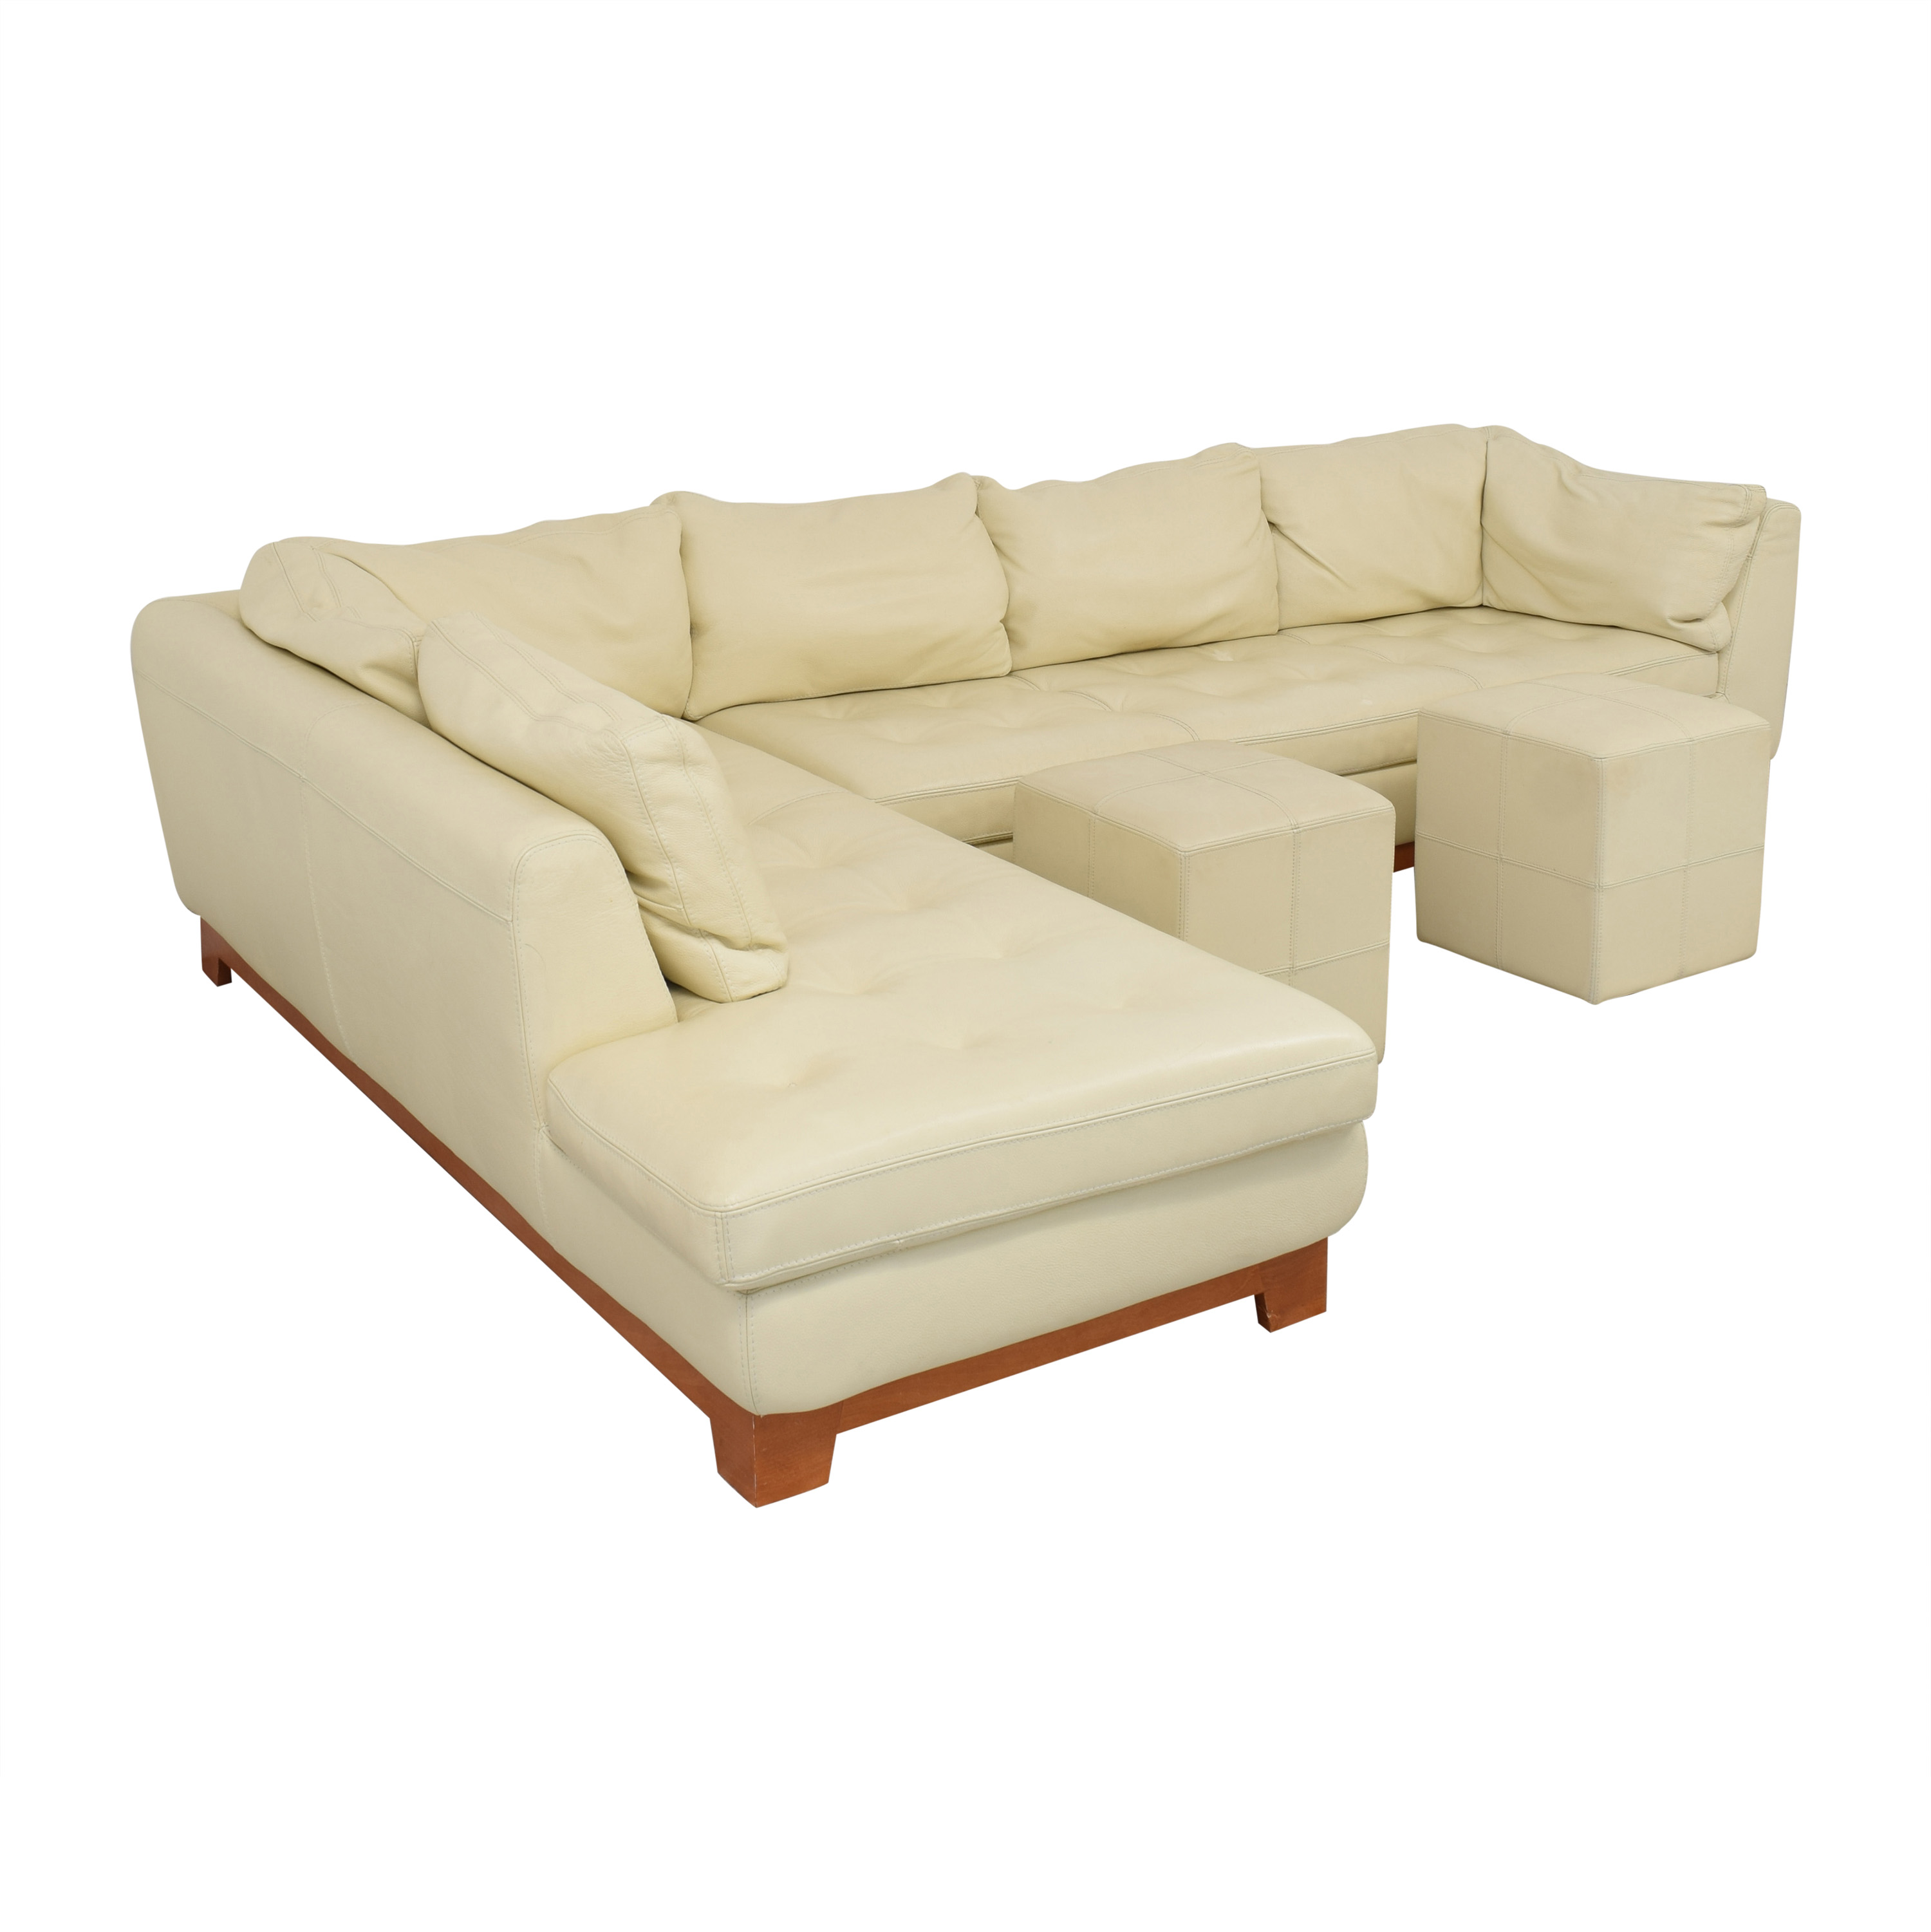 Roche Bobois Roche Bobois Chaise Sectional Sofa with Ottomans nyc